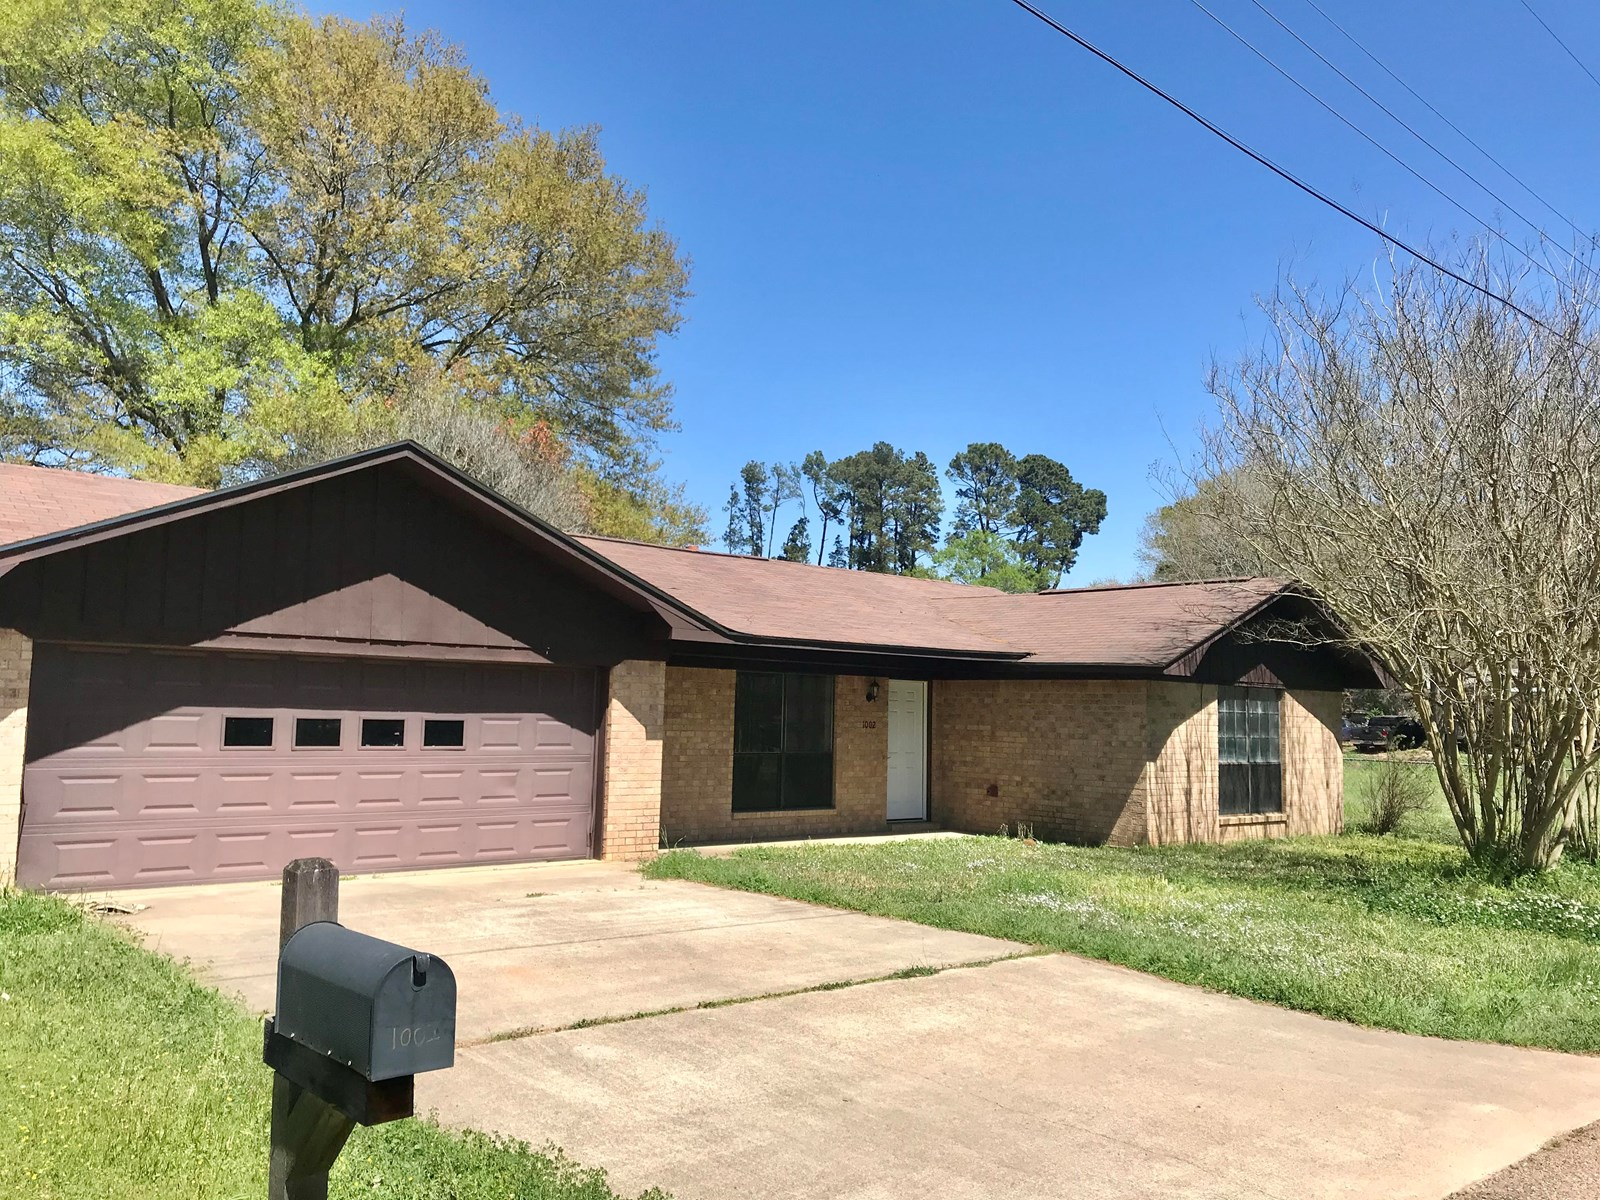 Ranch Style Brick Home for Sale in Atlanta, Texas